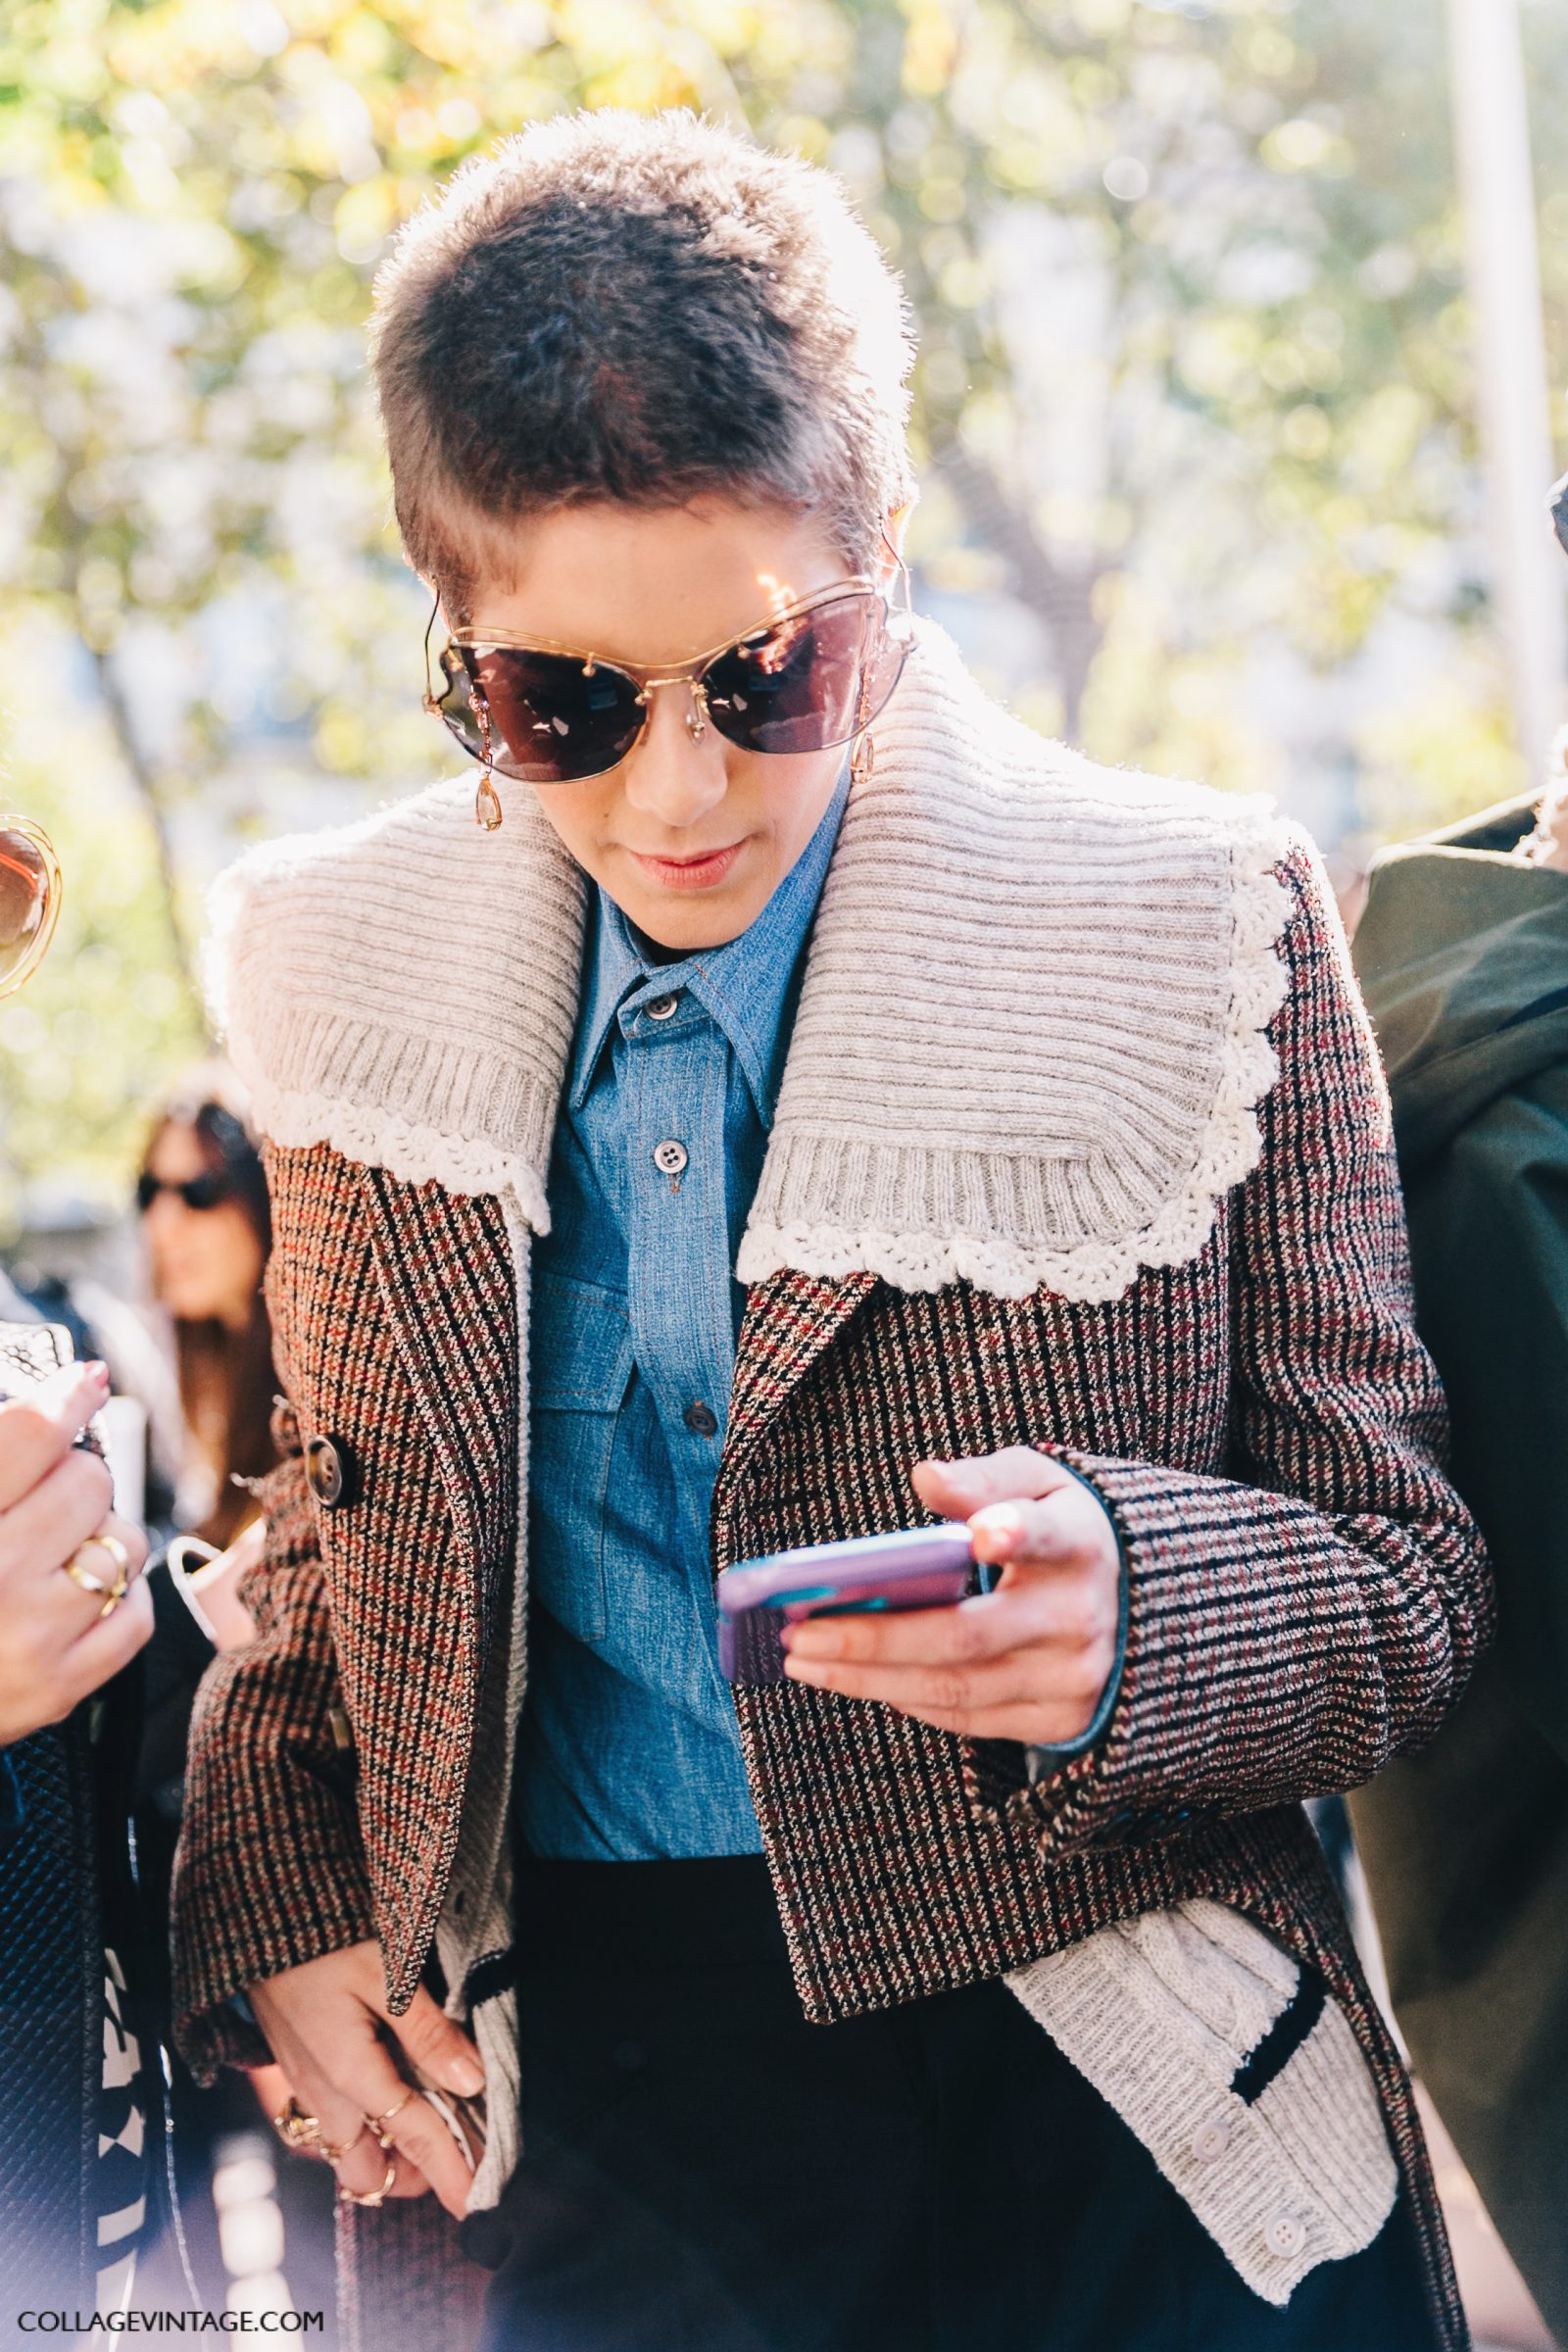 pfw-paris_fashion_week_ss17-street_style-outfit-collage_vintage-louis_vuitton-miu_miu-41